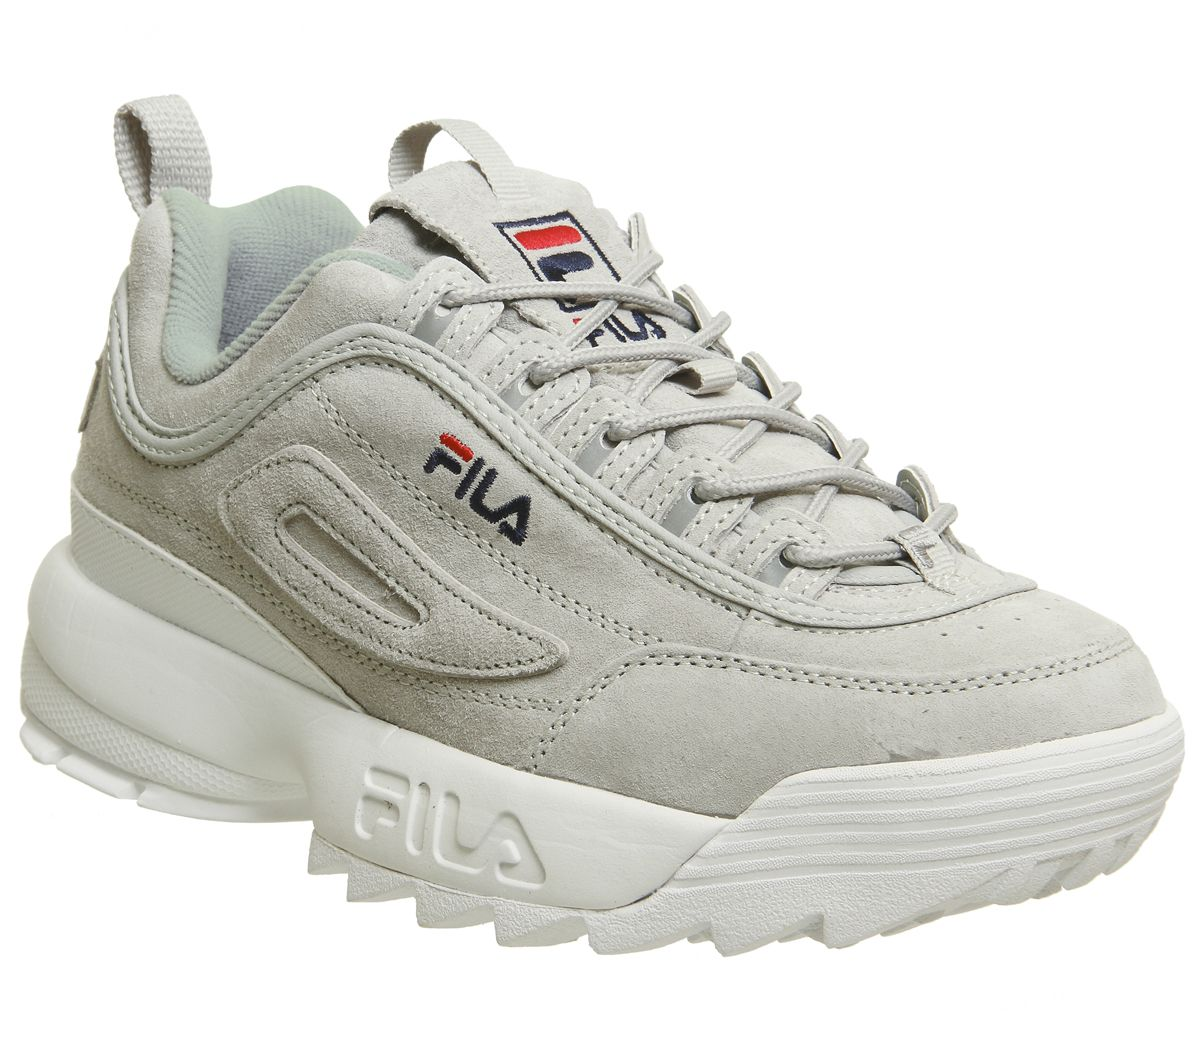 59bc10a93679 Fila Disruptor II Trainers Grey Suede - Hers trainers